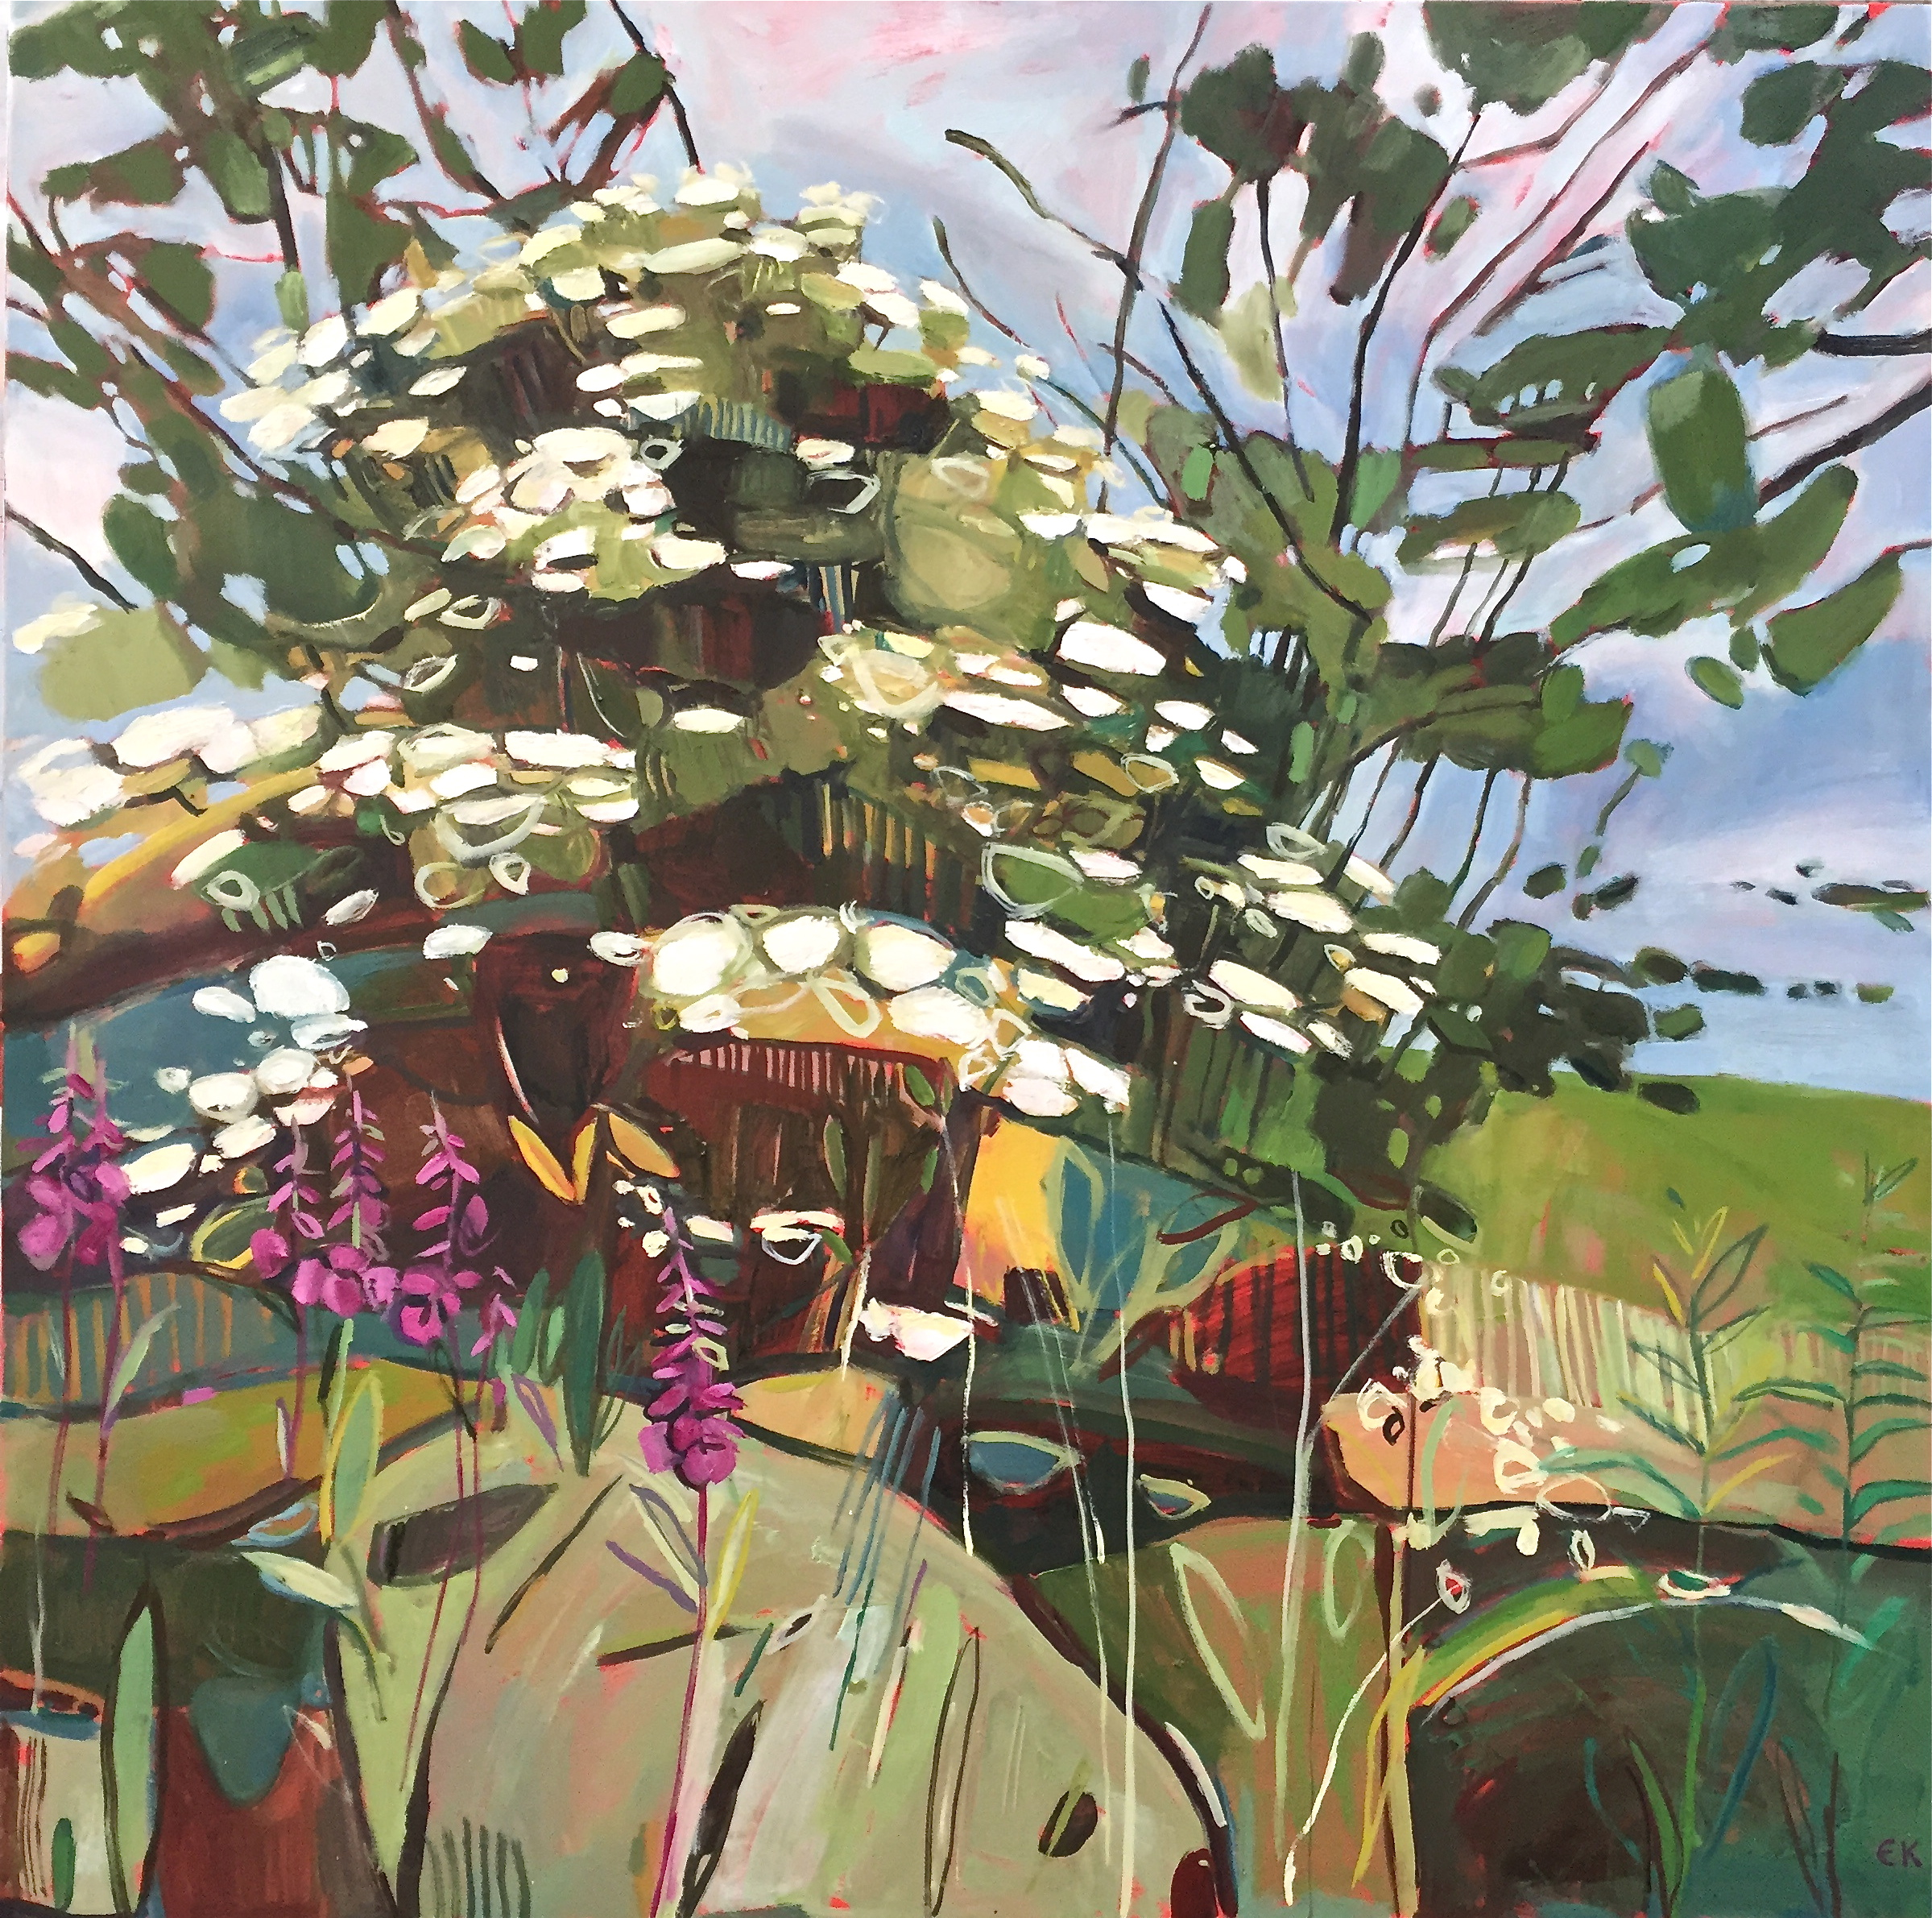 Midsummer Triptych - right panel, Rose Bay Willow Herb and Elder